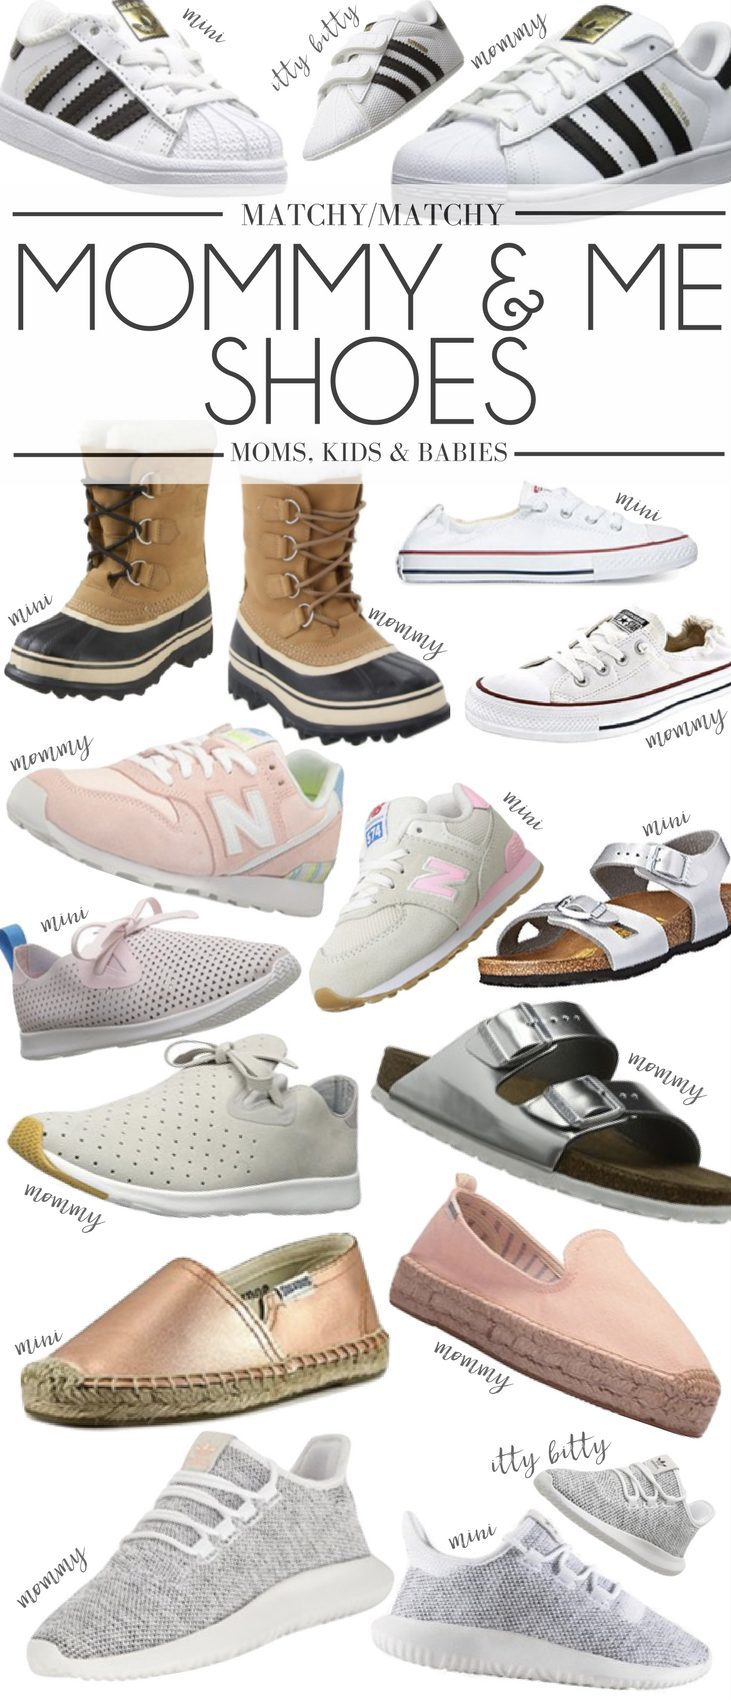 1ec0d2baf52253 the cutest mommy and me shoes - great shoes for moms and their little minis